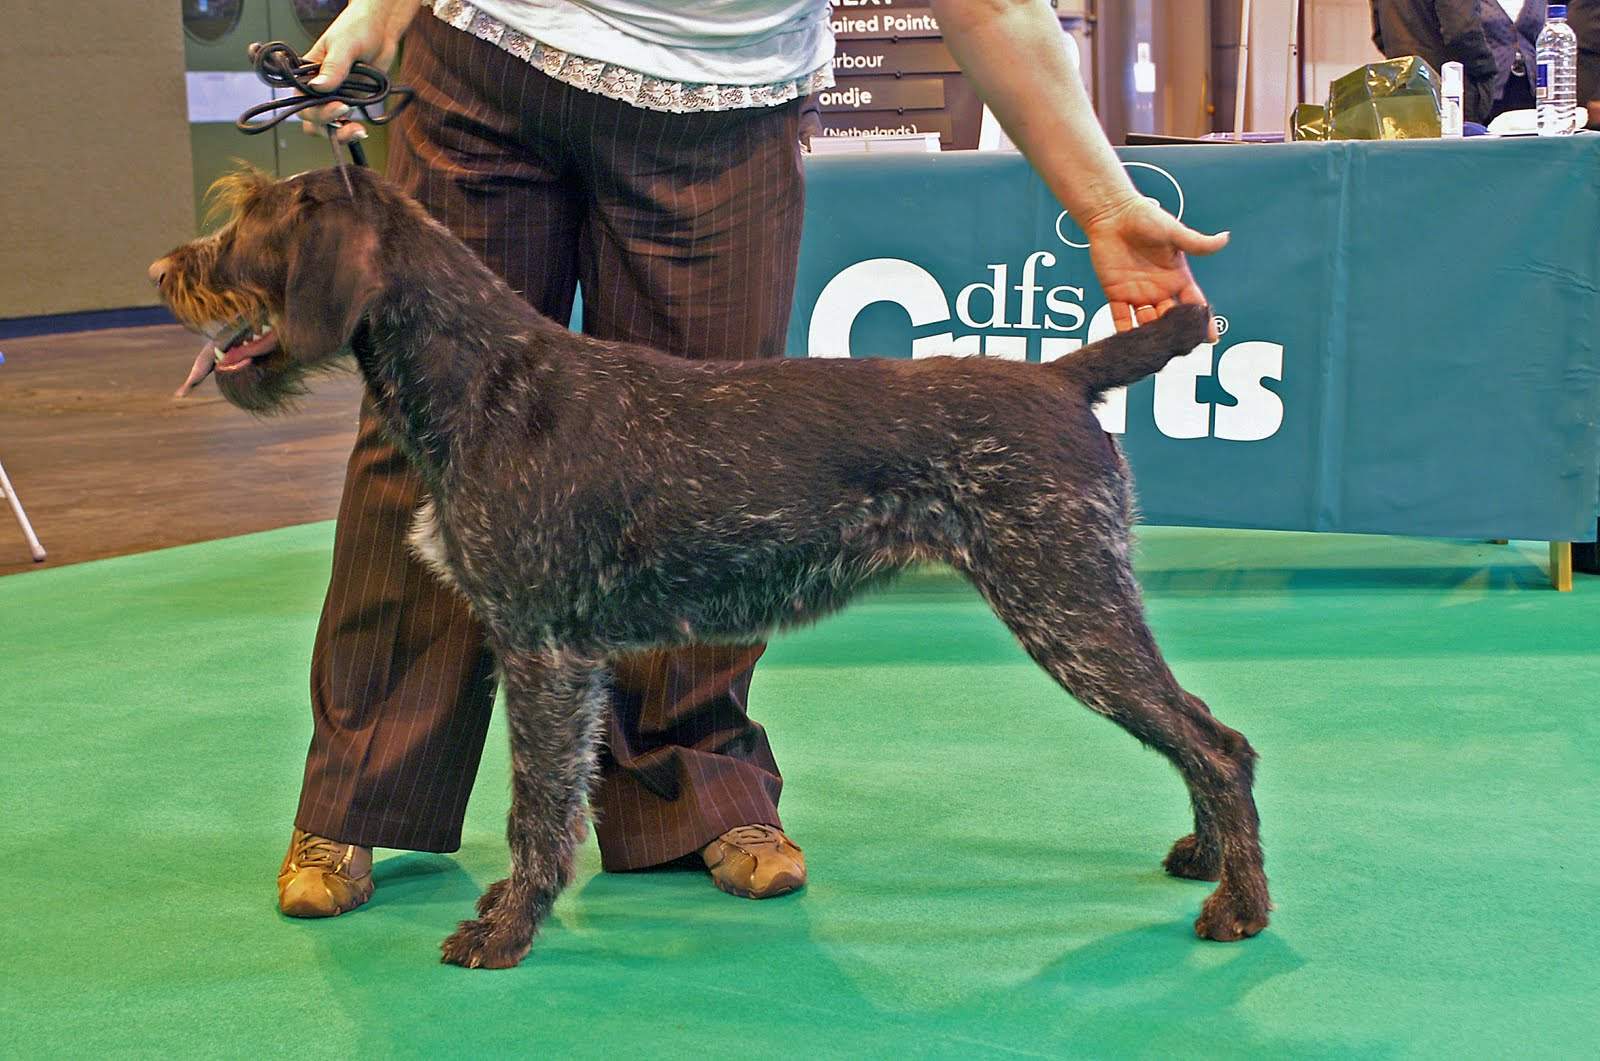 Klancraig Chat: DFS Crufts 2011 - German Wirehaired Pointers